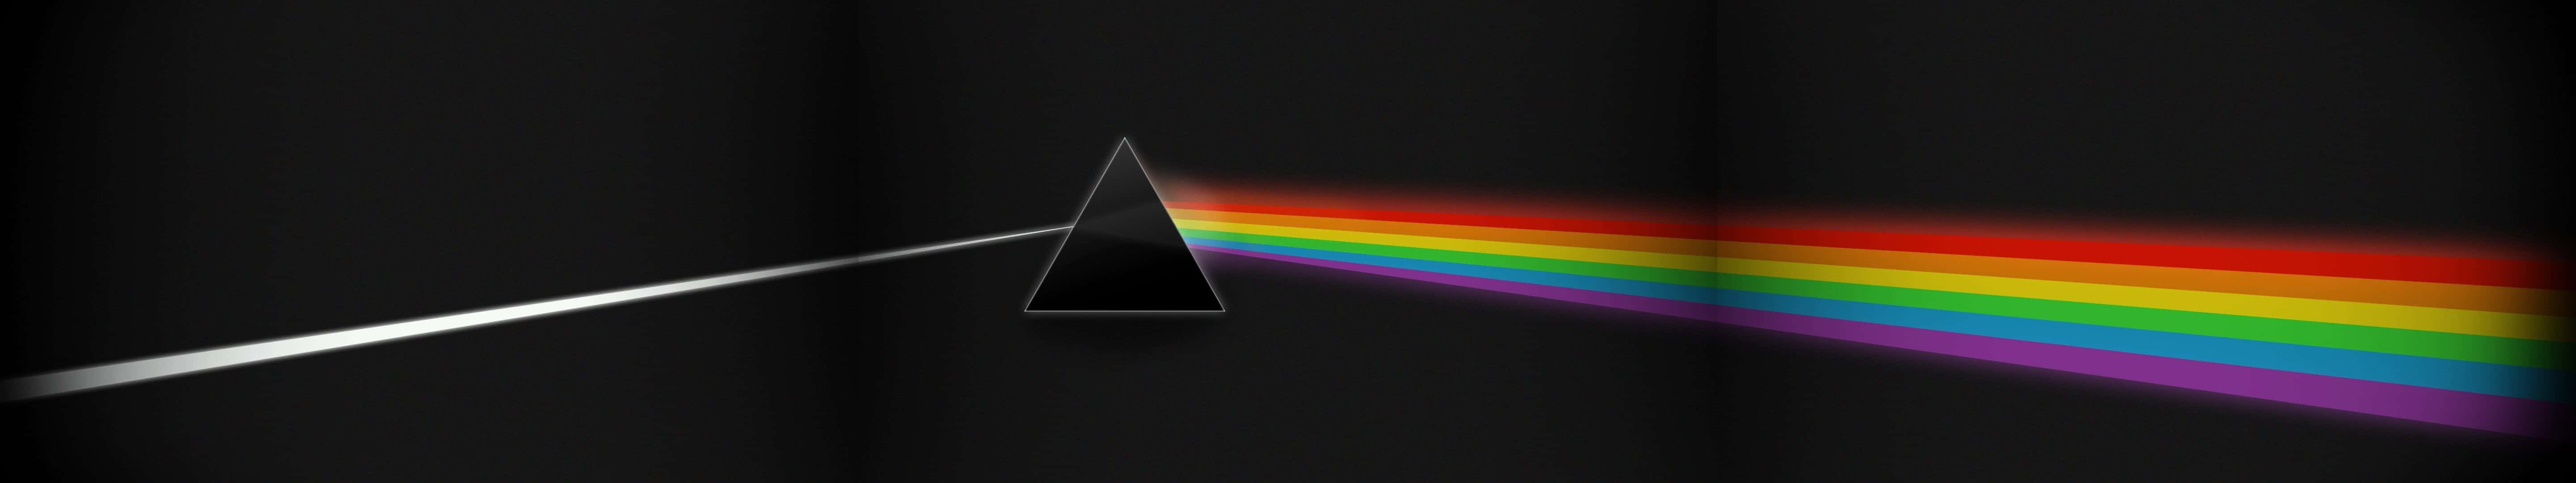 pink floyd dark side of the moon album cover triple monitor wallpaper